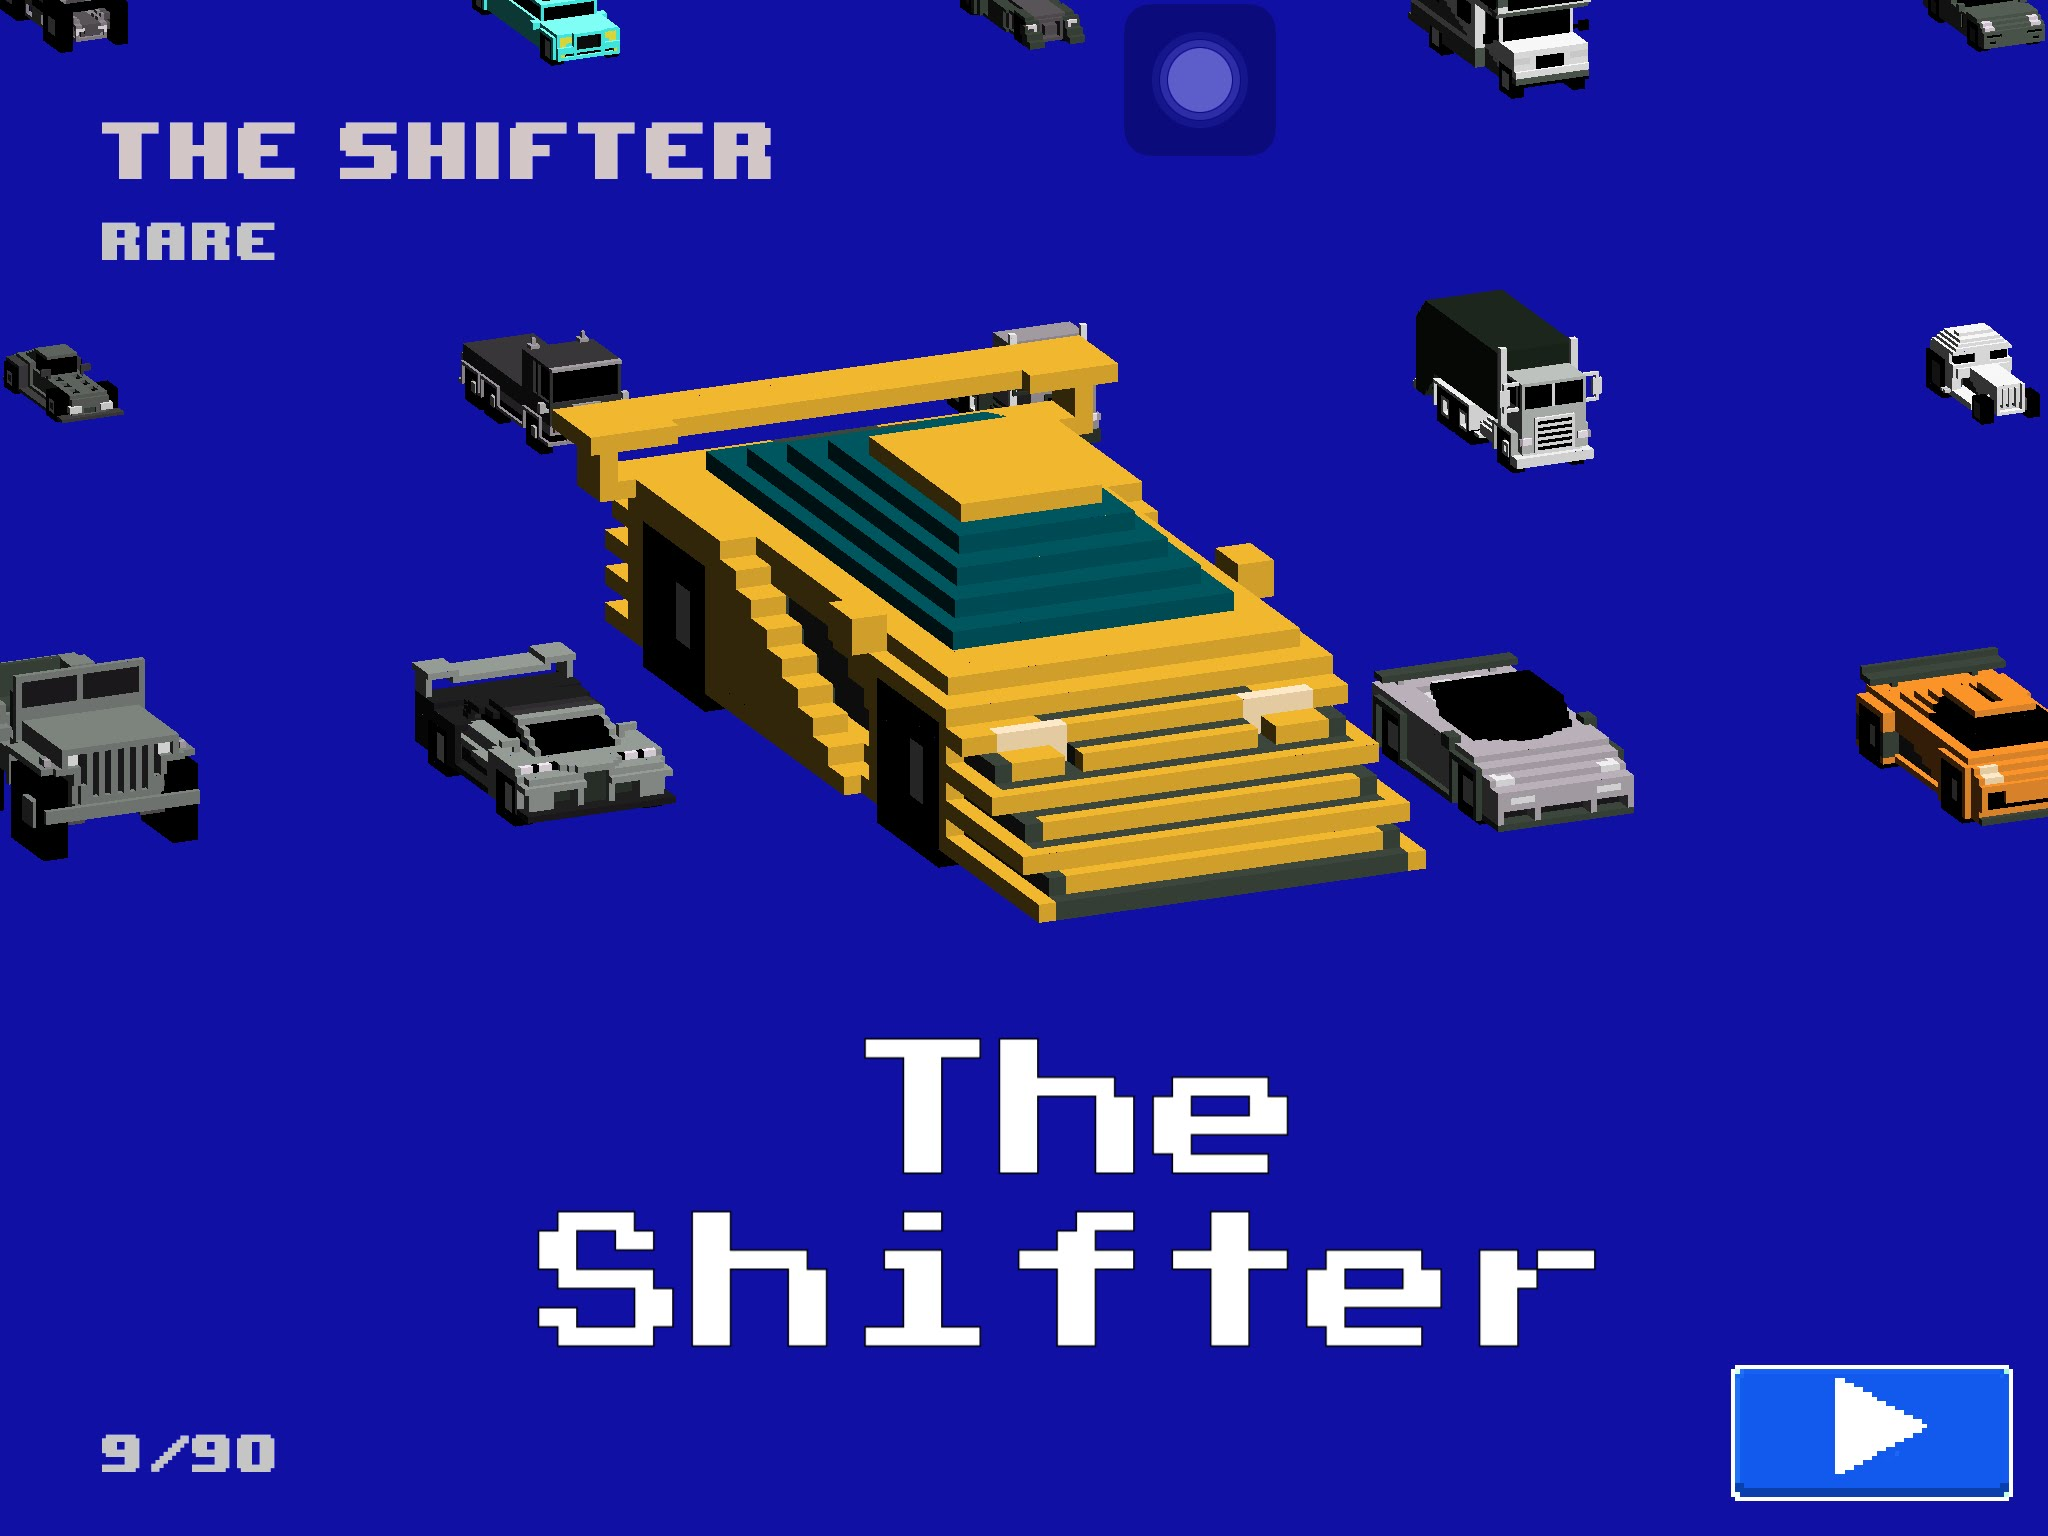 The shifter smashy road wikia fandom powered by wikia publicscrutiny Image collections